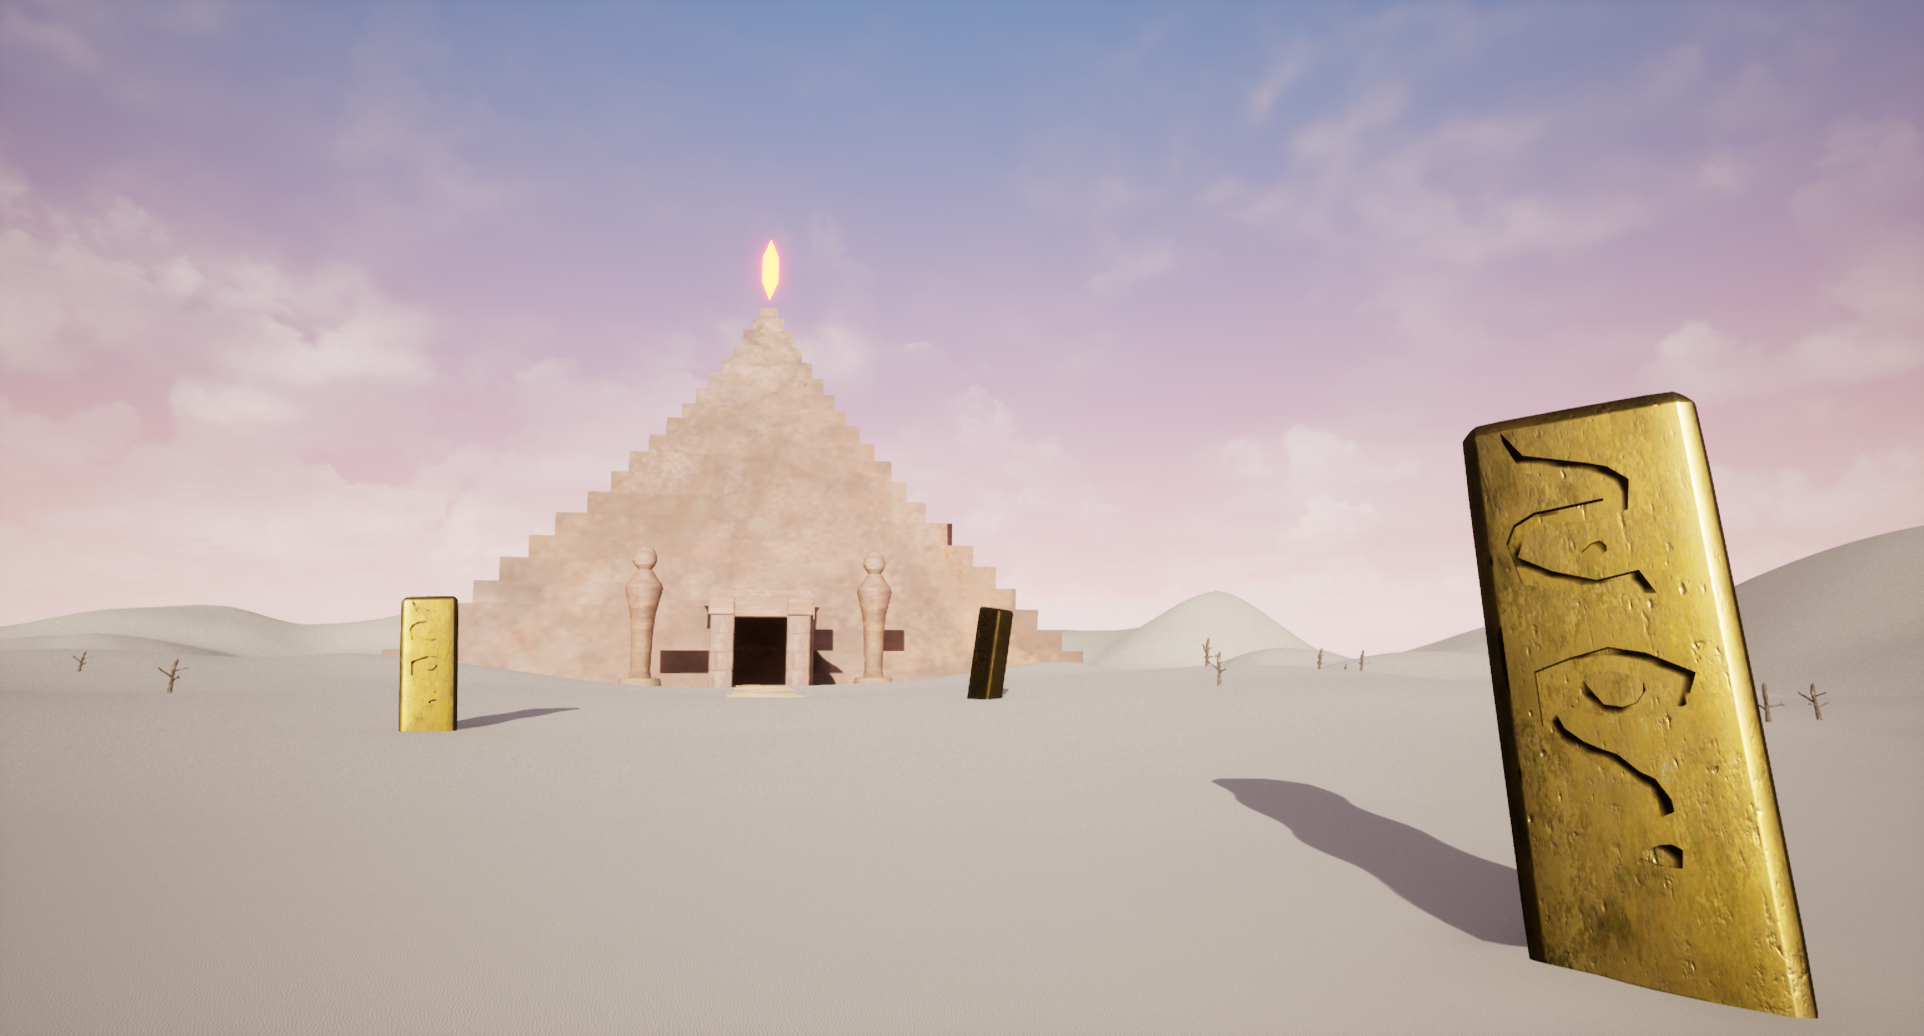 Lost Elements - Desert Pyramid Level Image